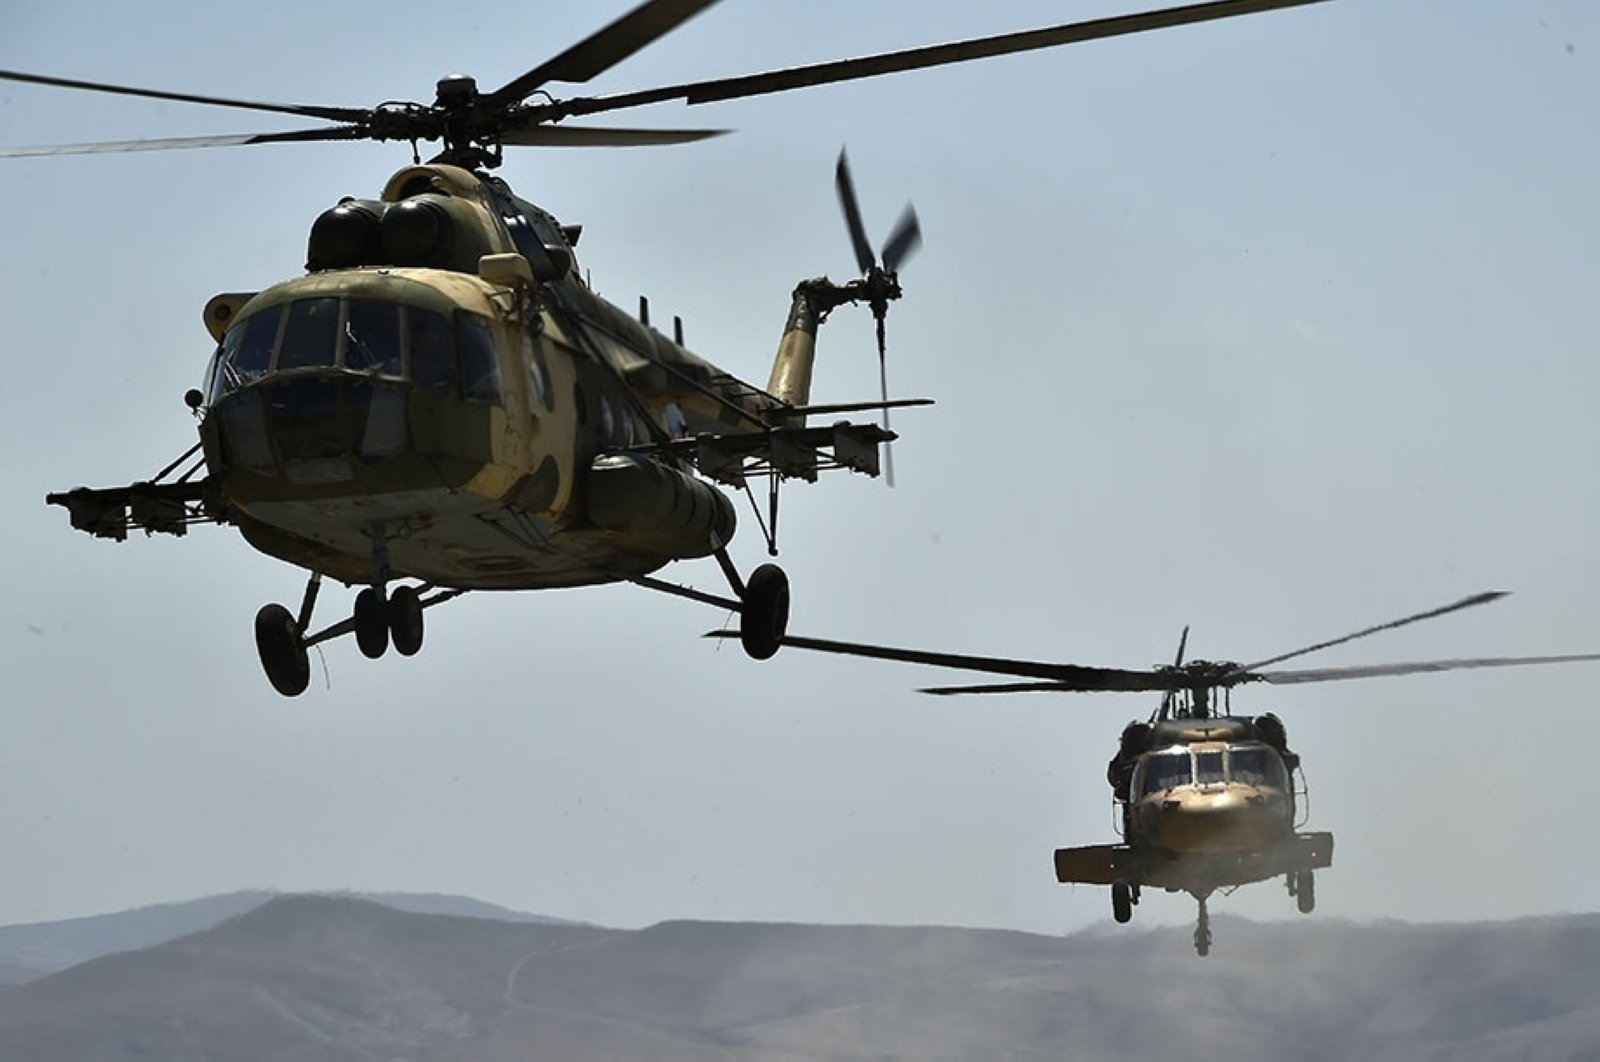 Helicopters carry out drills during joint military exercises conducted by the Turkish and Azerbaijani armed forces in Azerbaijan, Aug. 9, 2020. (AA Photo)